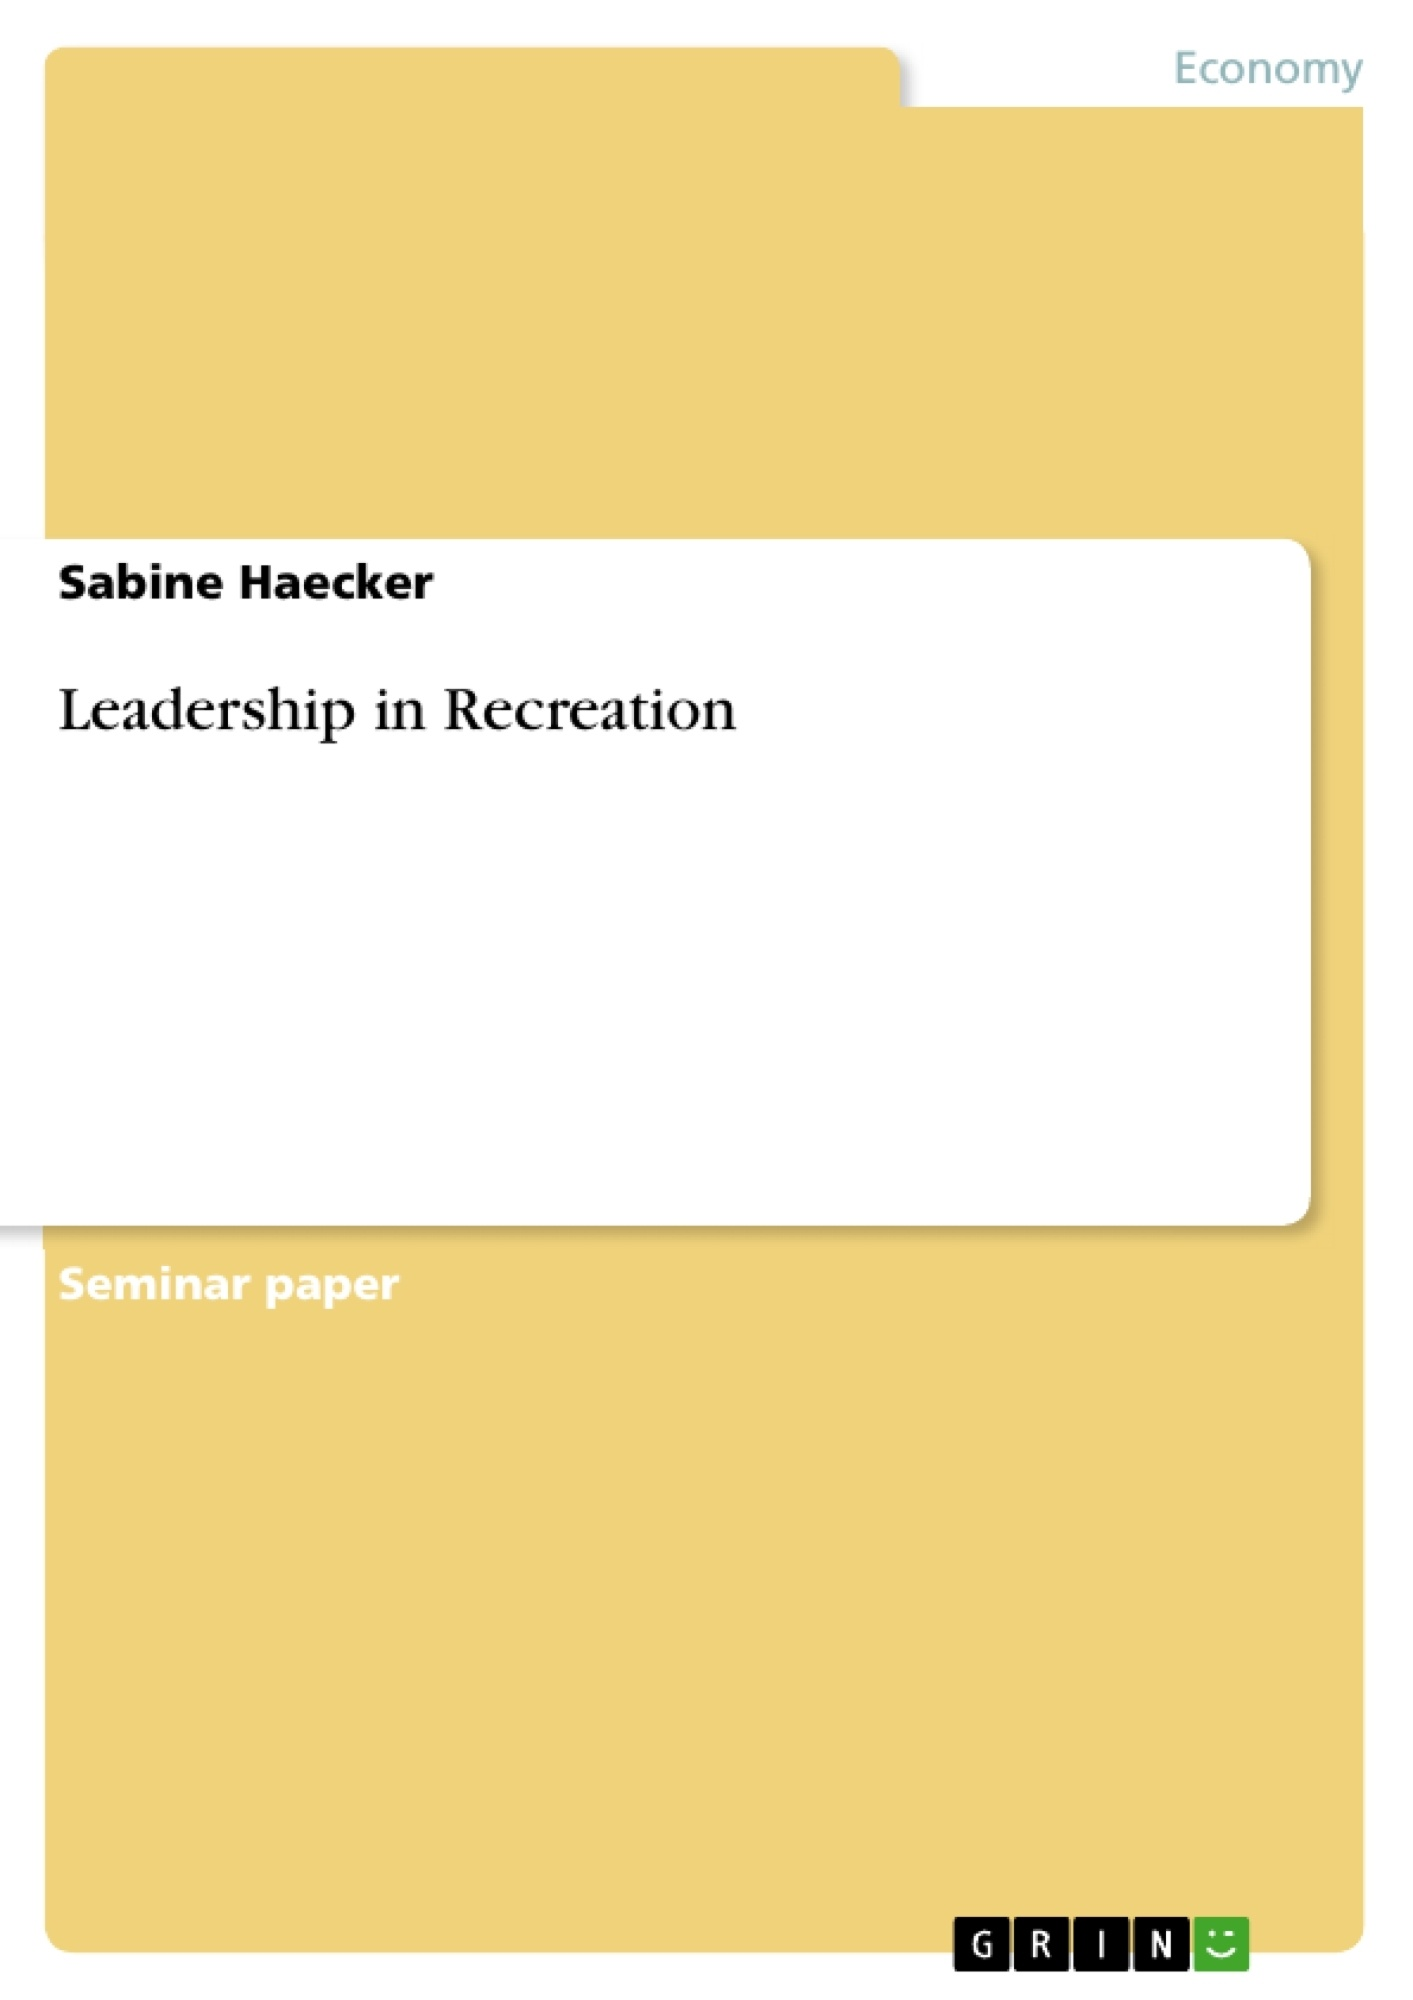 Title: Leadership in Recreation